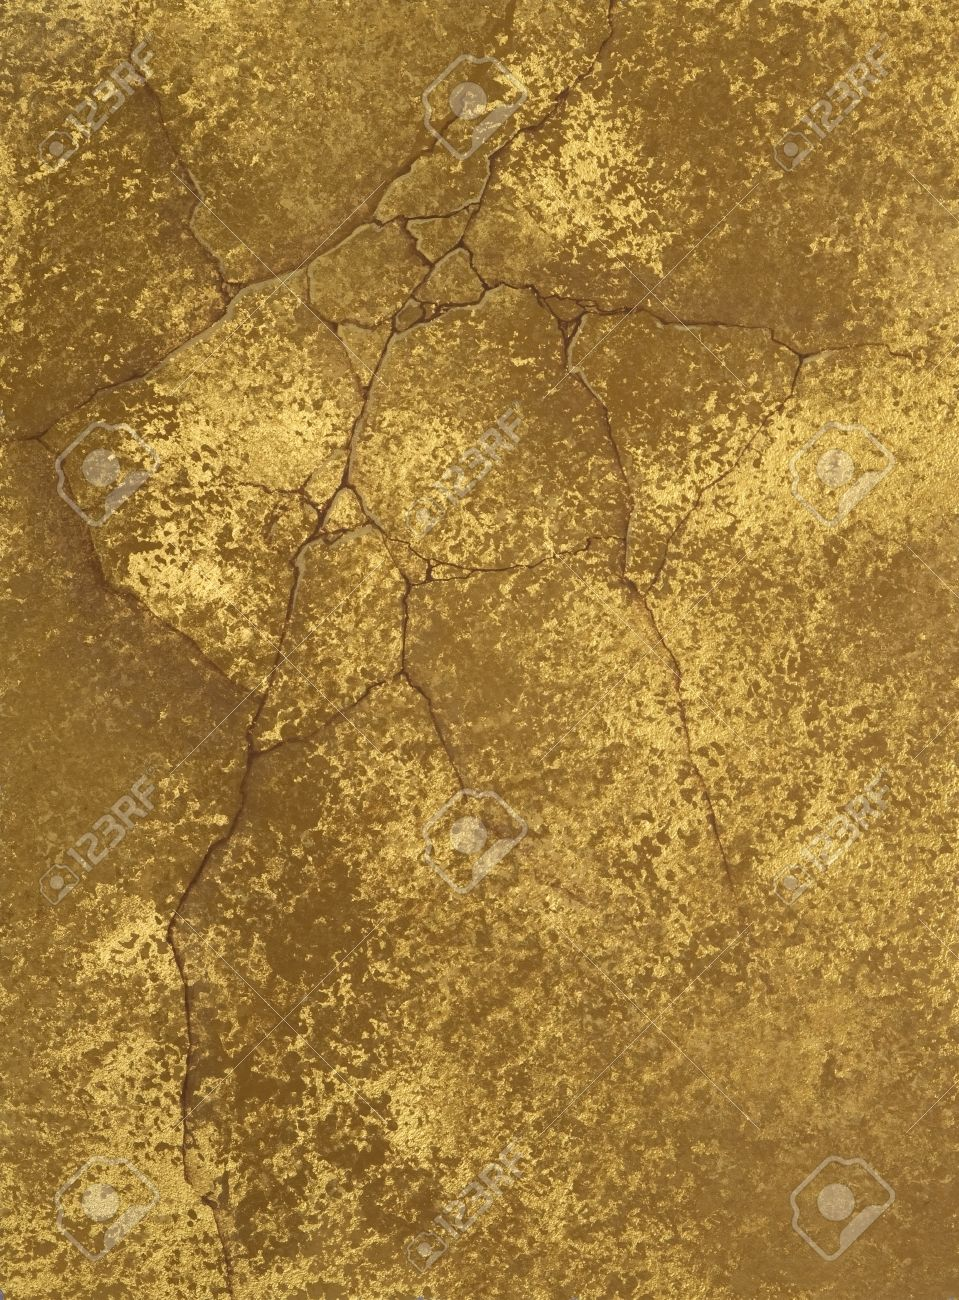 Texture Of A Cement Wall Covered Metallic Paint With Gold Spots